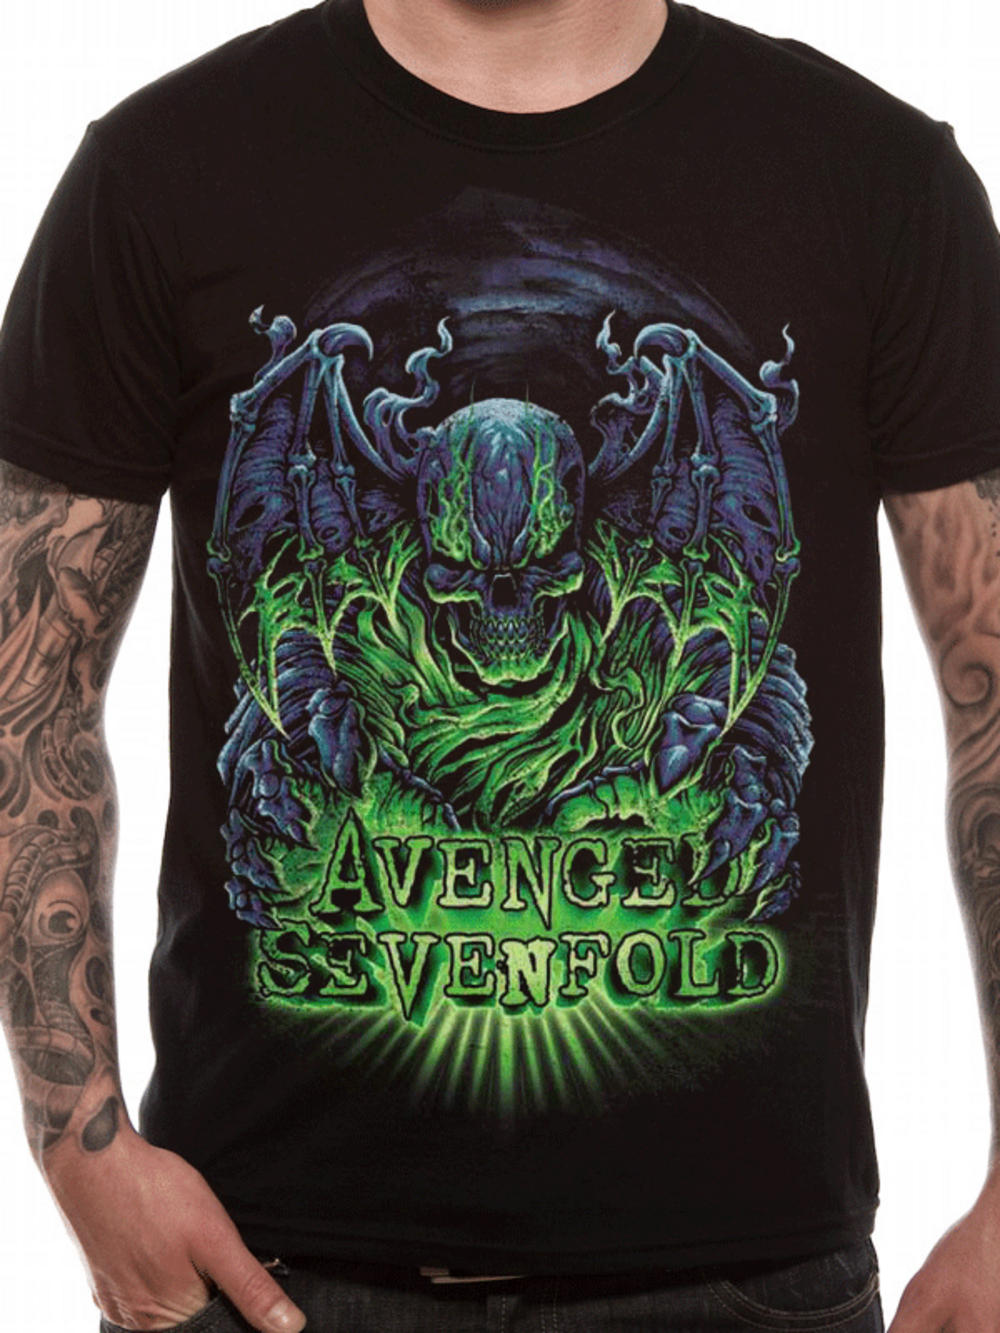 Avenged Sevenfold (Dare To Die) T-Shirt